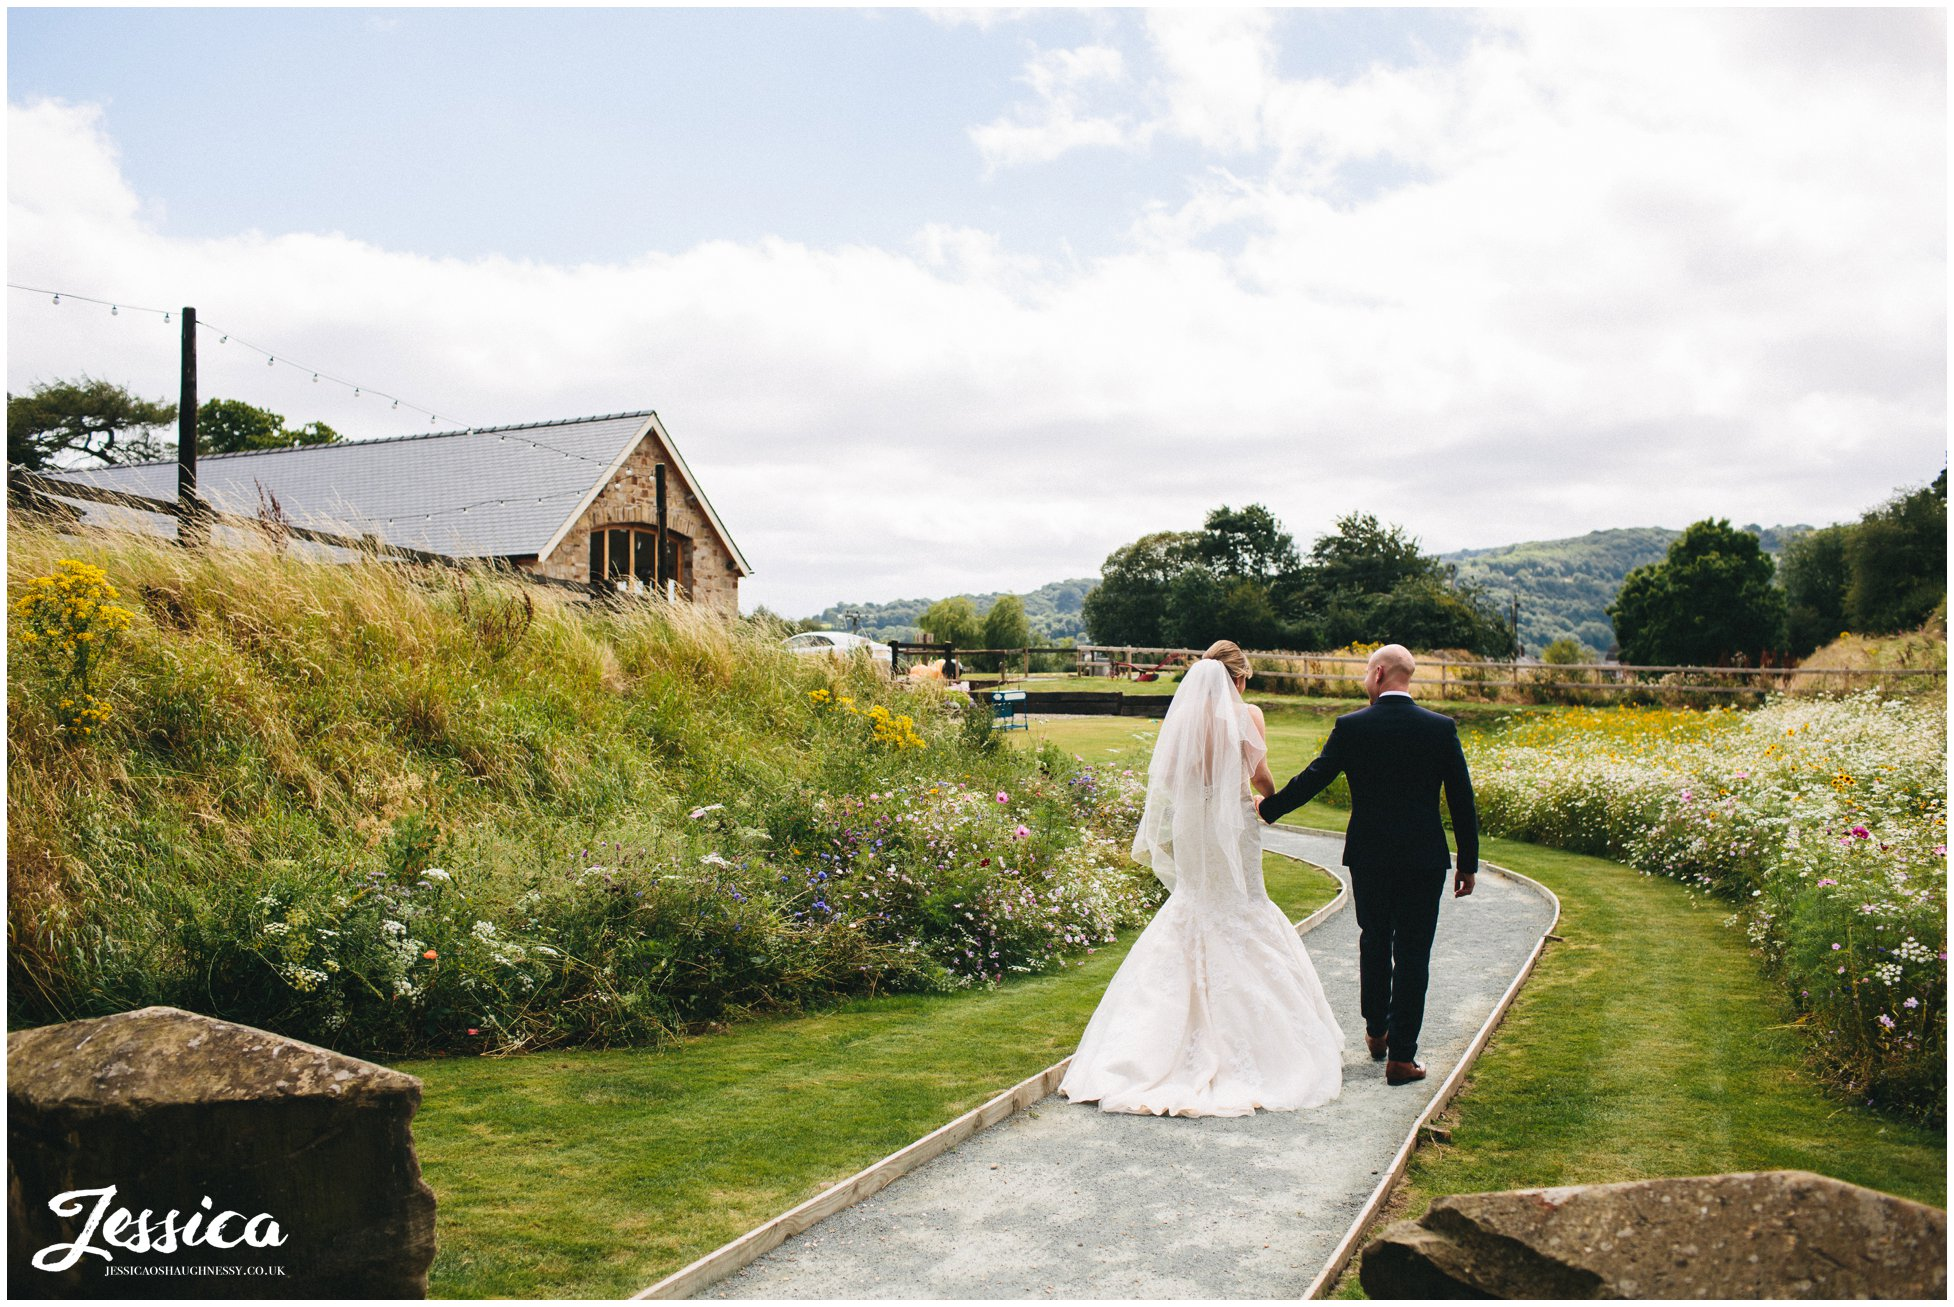 newly wed's walk down path after their wedding ceremony in north wales